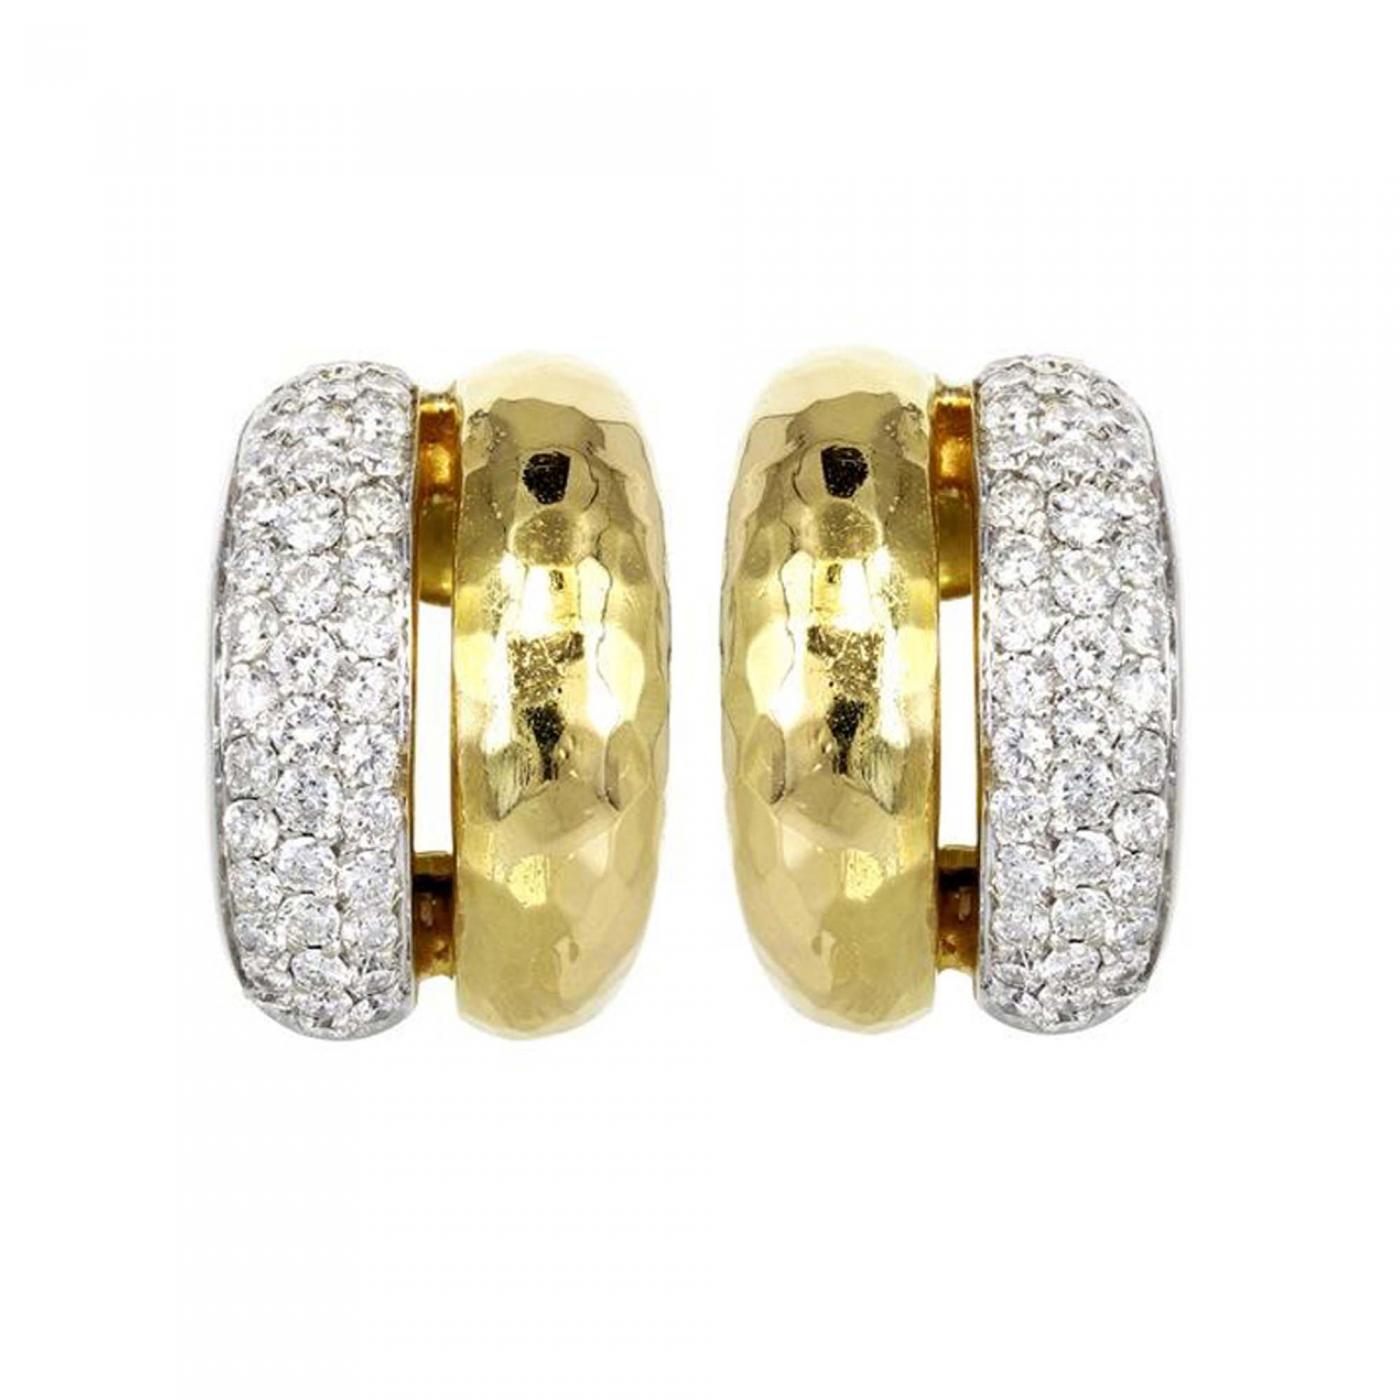 H Stern Yellow Gold & Diamond H Stern Hoops Earrings